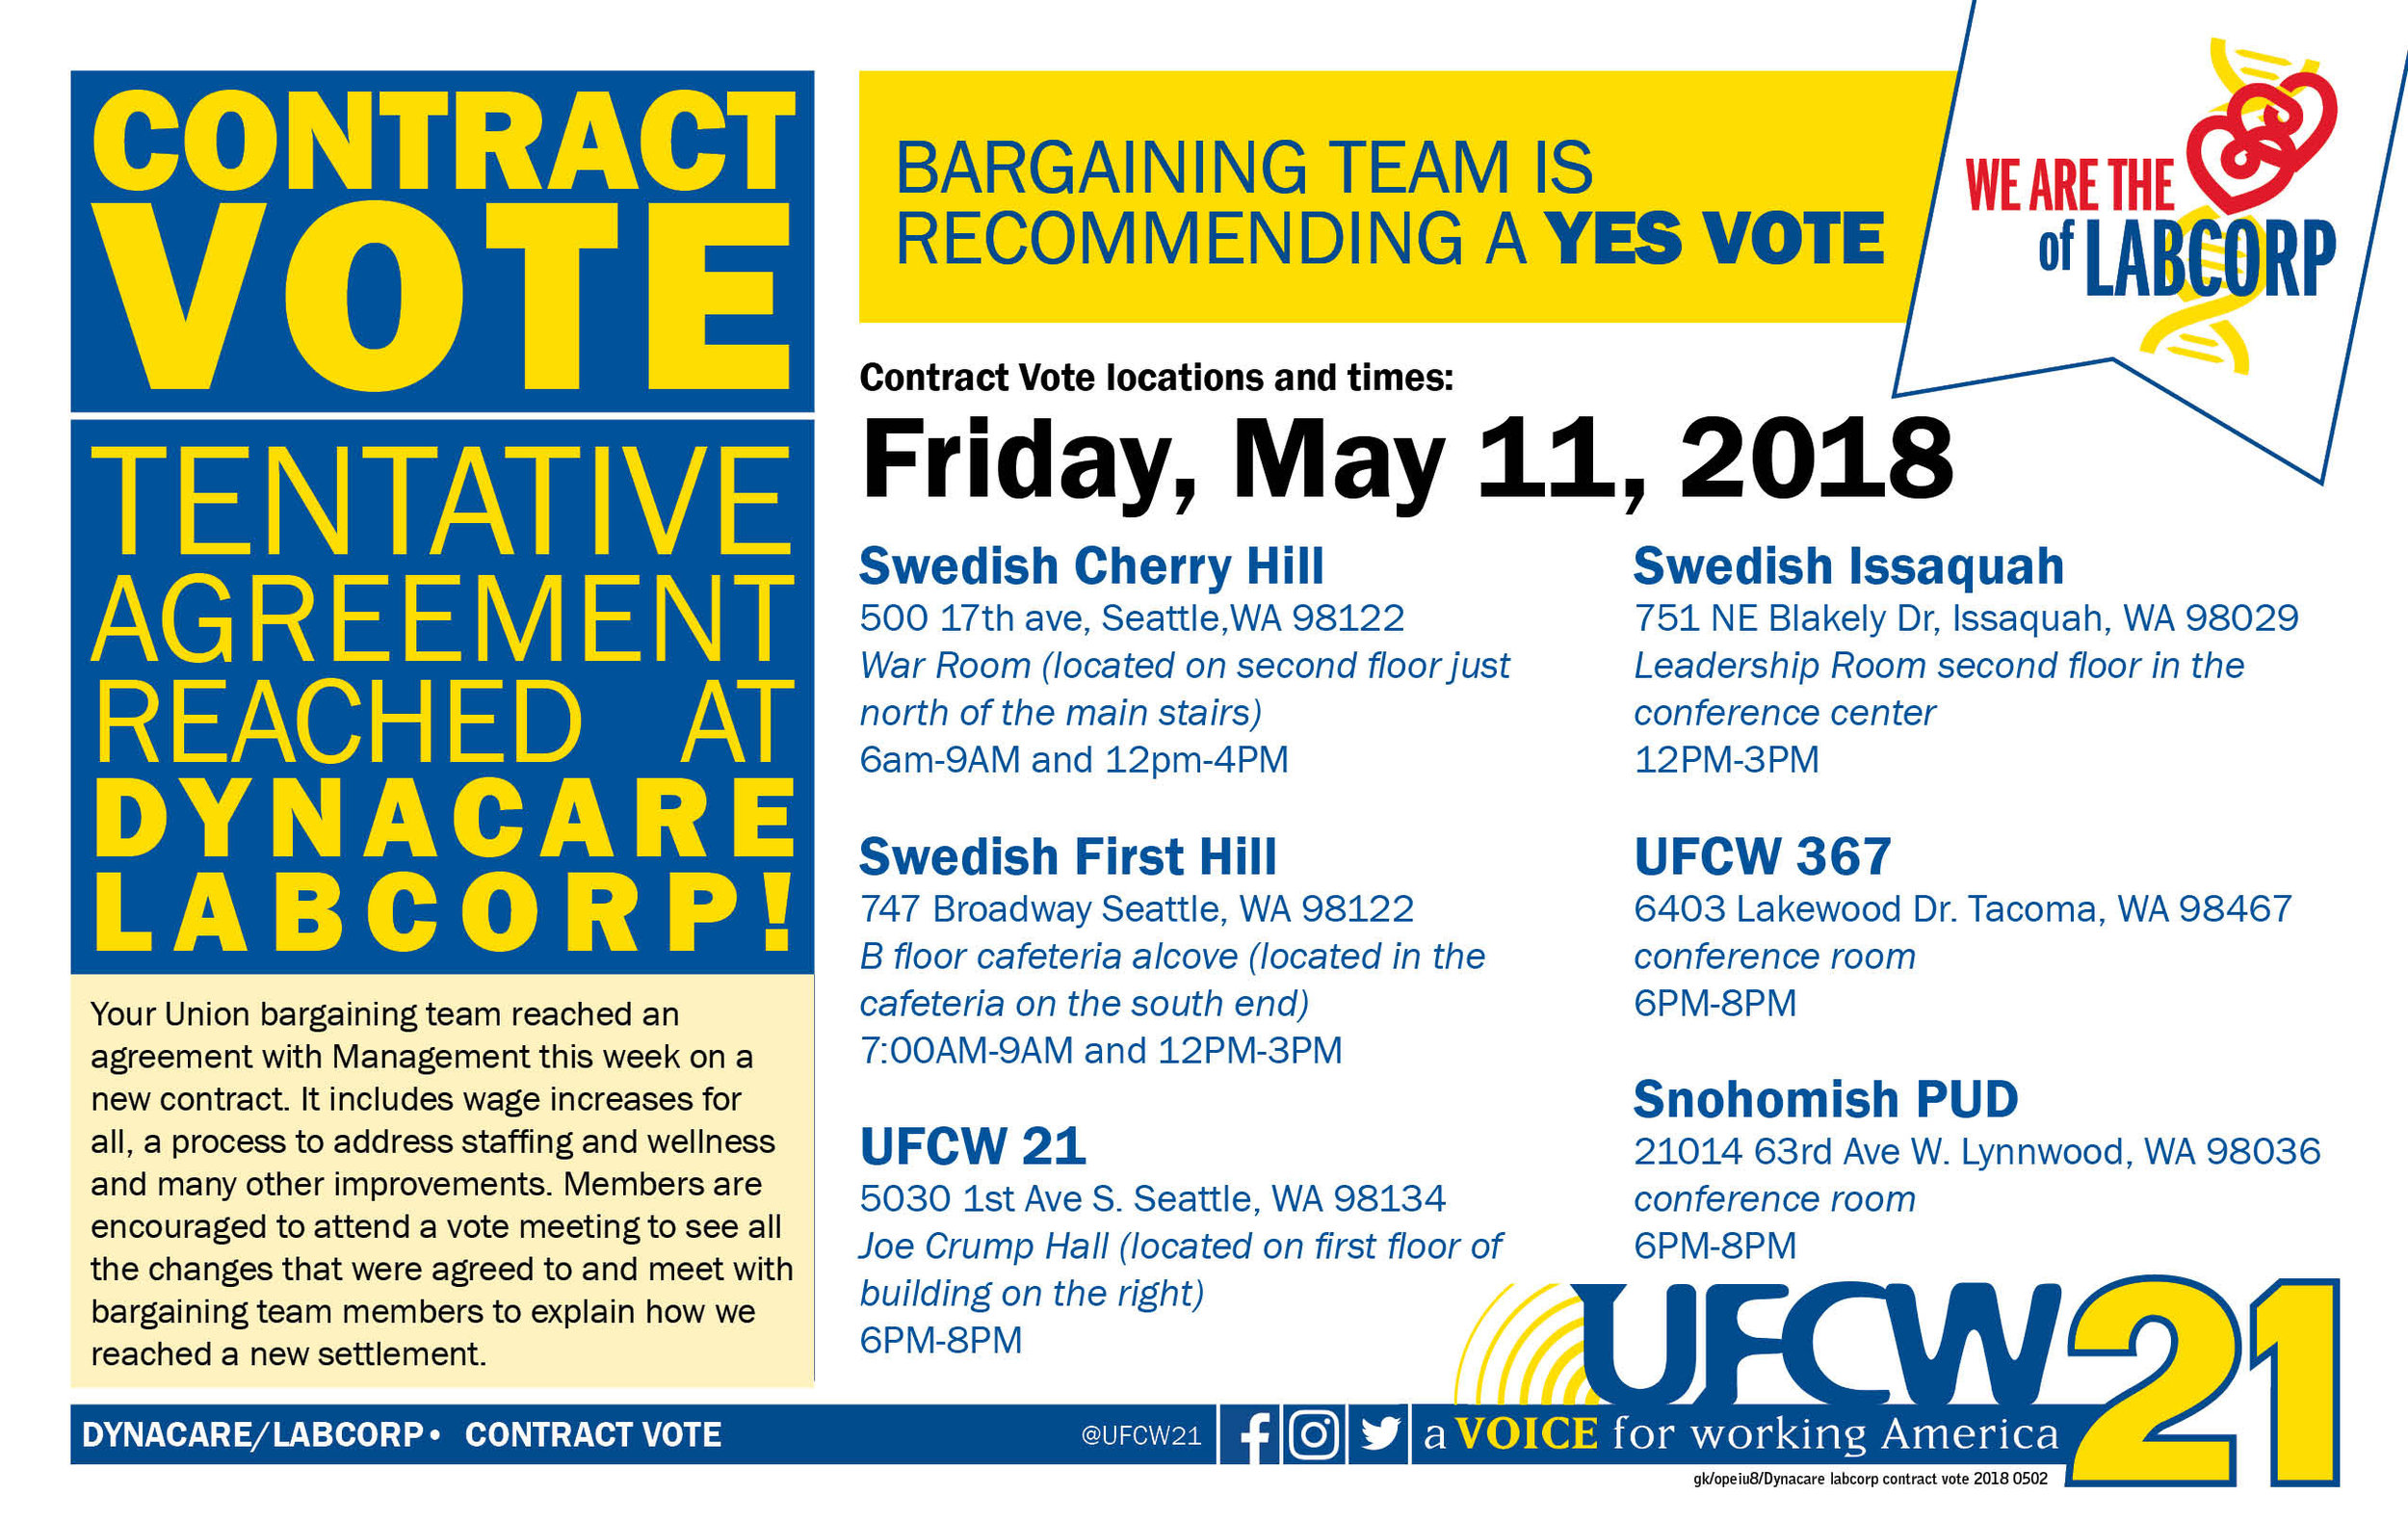 2018 0502 DynaCare Labcorp Contract Vote.jpg